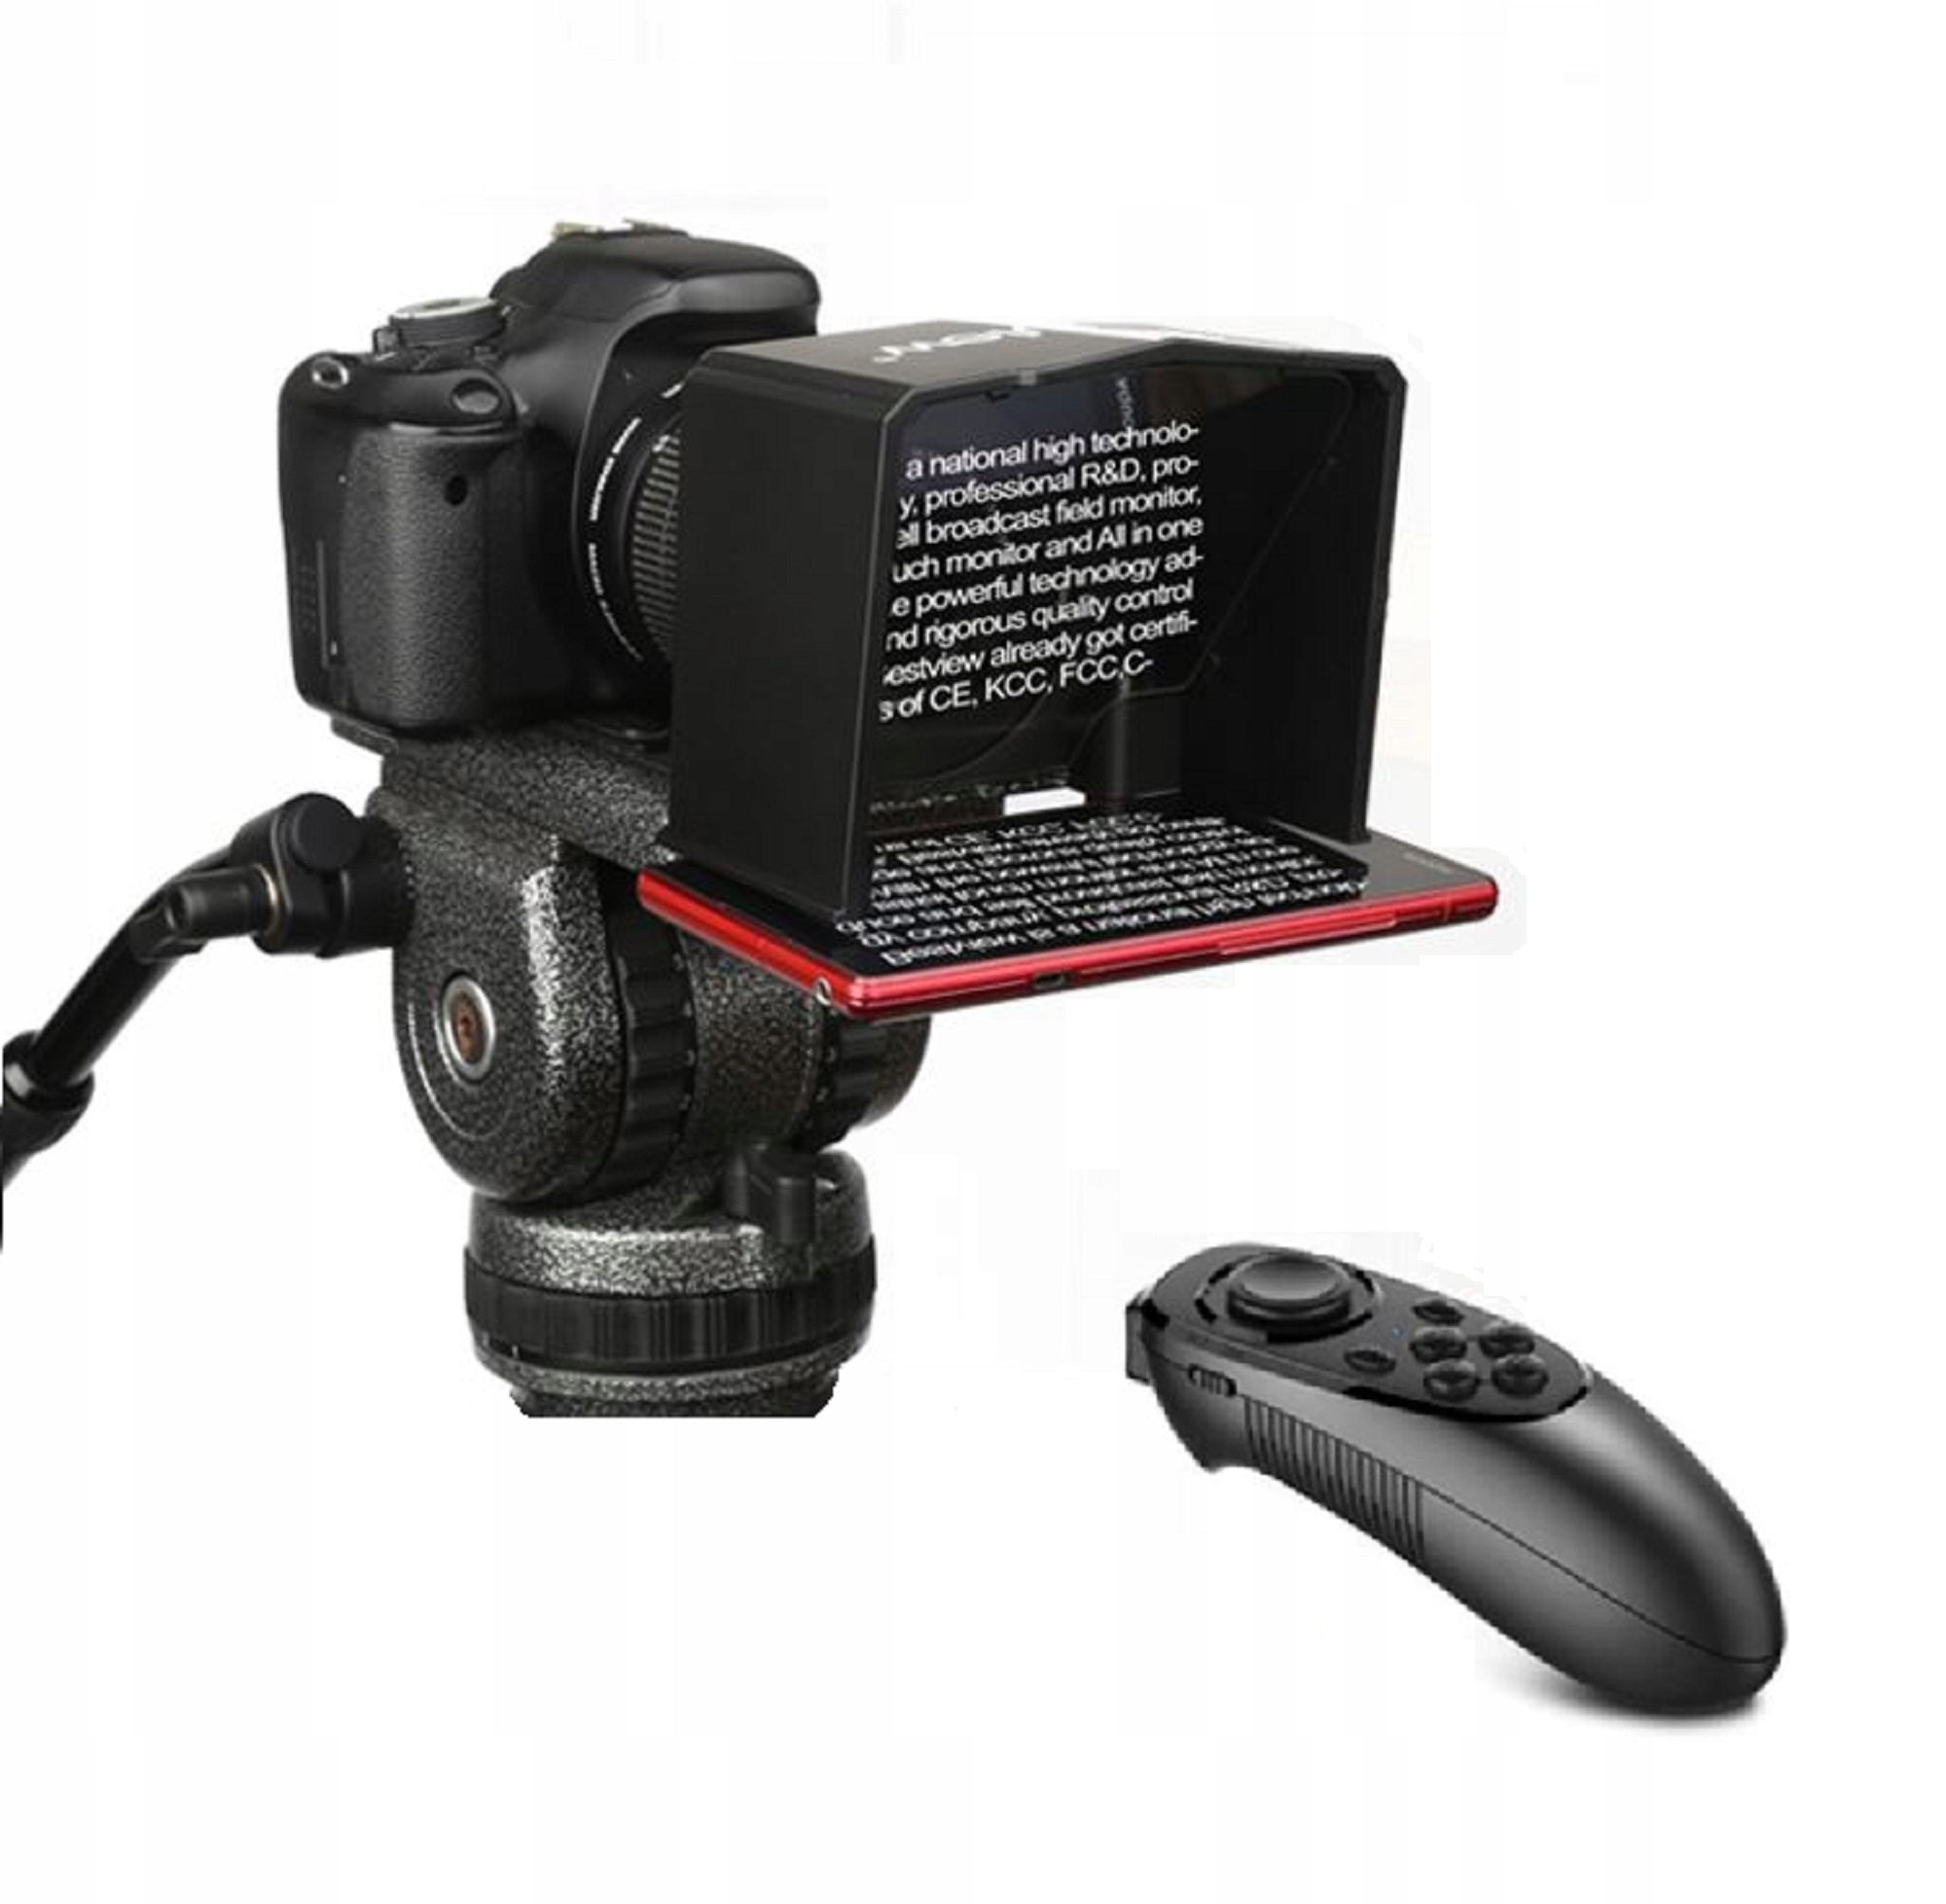 Item PROFESSIONAL TELEPROMPTER remote control mobile prompter